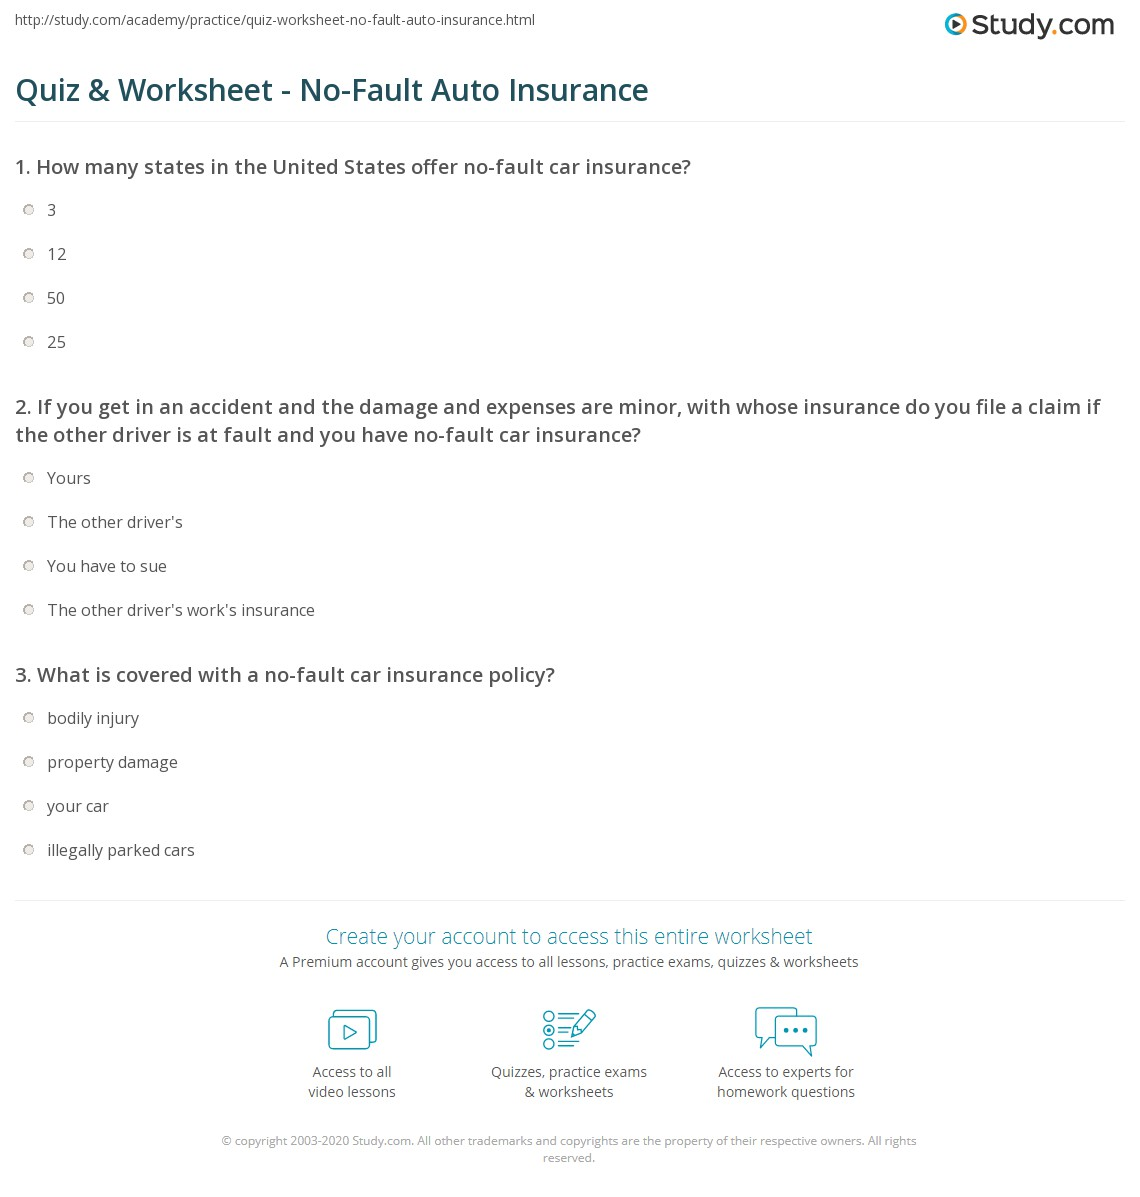 quiz & worksheet - no-fault auto insurance | study